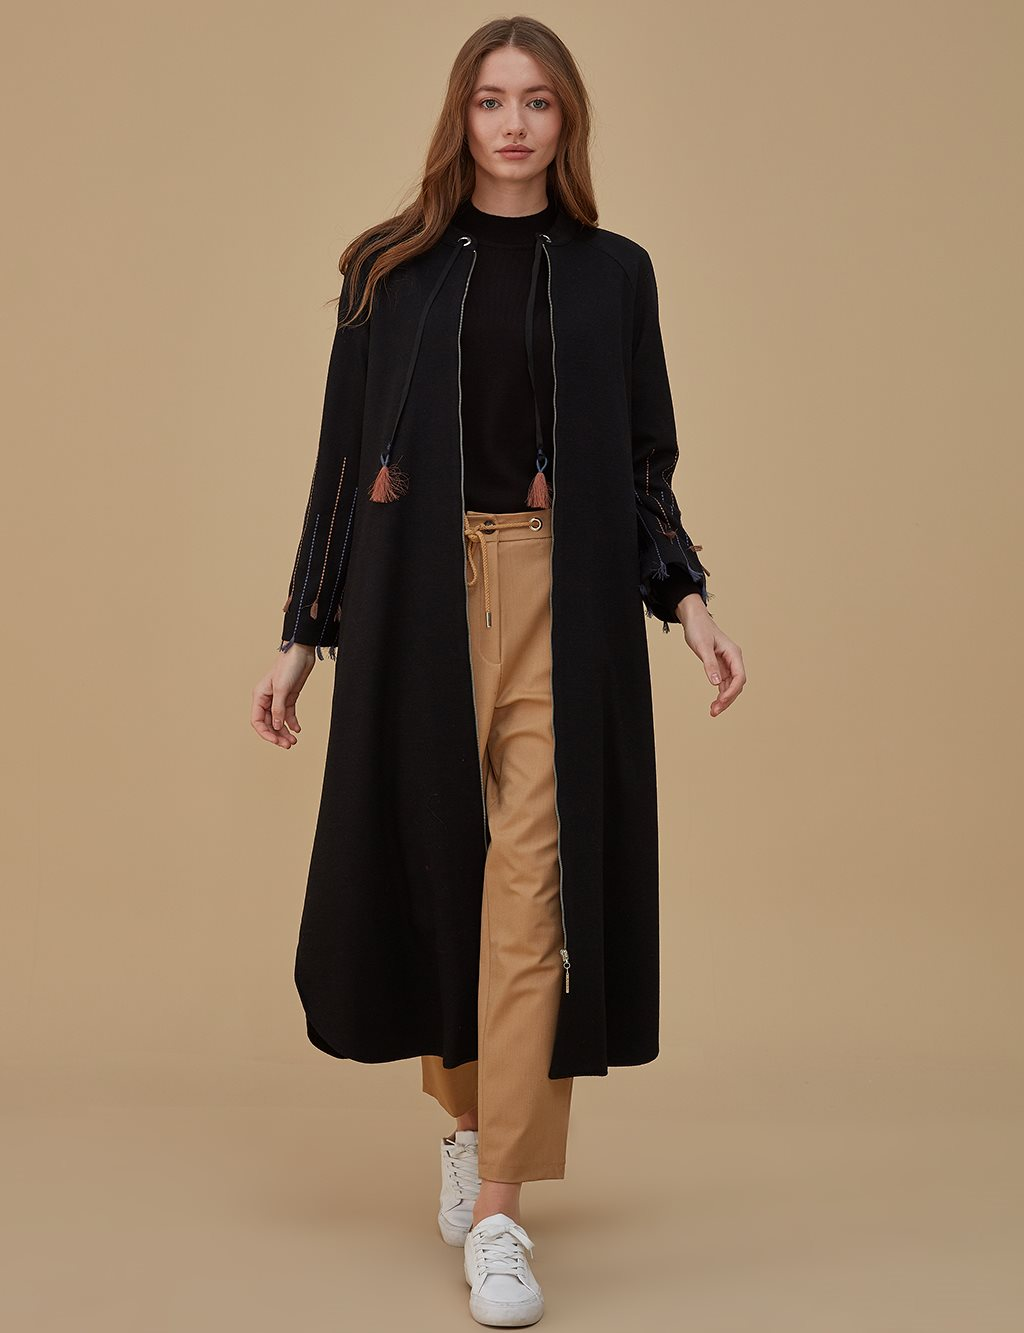 Sleeve Detailed Overcoat A9 25117 Black